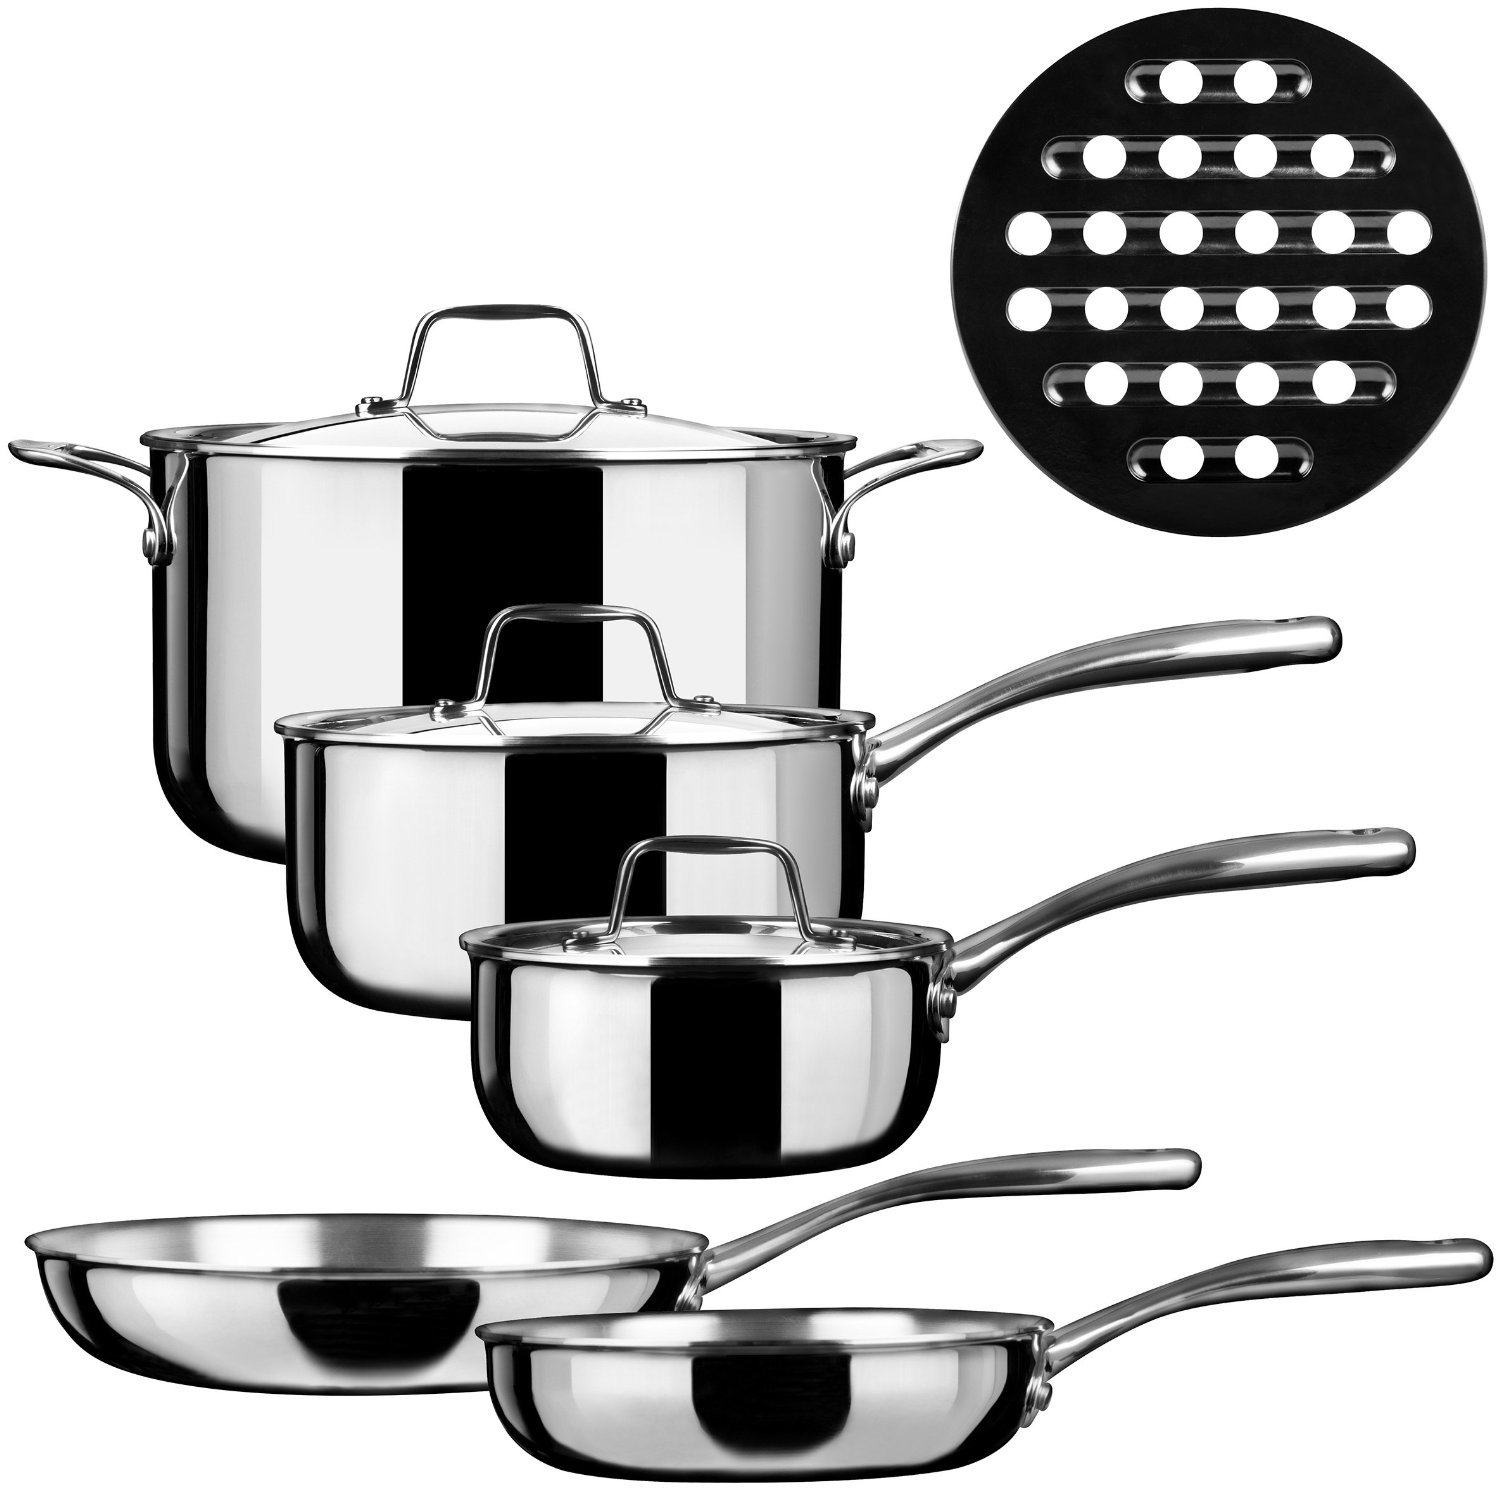 Duxtop SSC-9PC 9 Piece Whole-Clad Tri-Ply Induction Cookware, Stainless Steel Secura